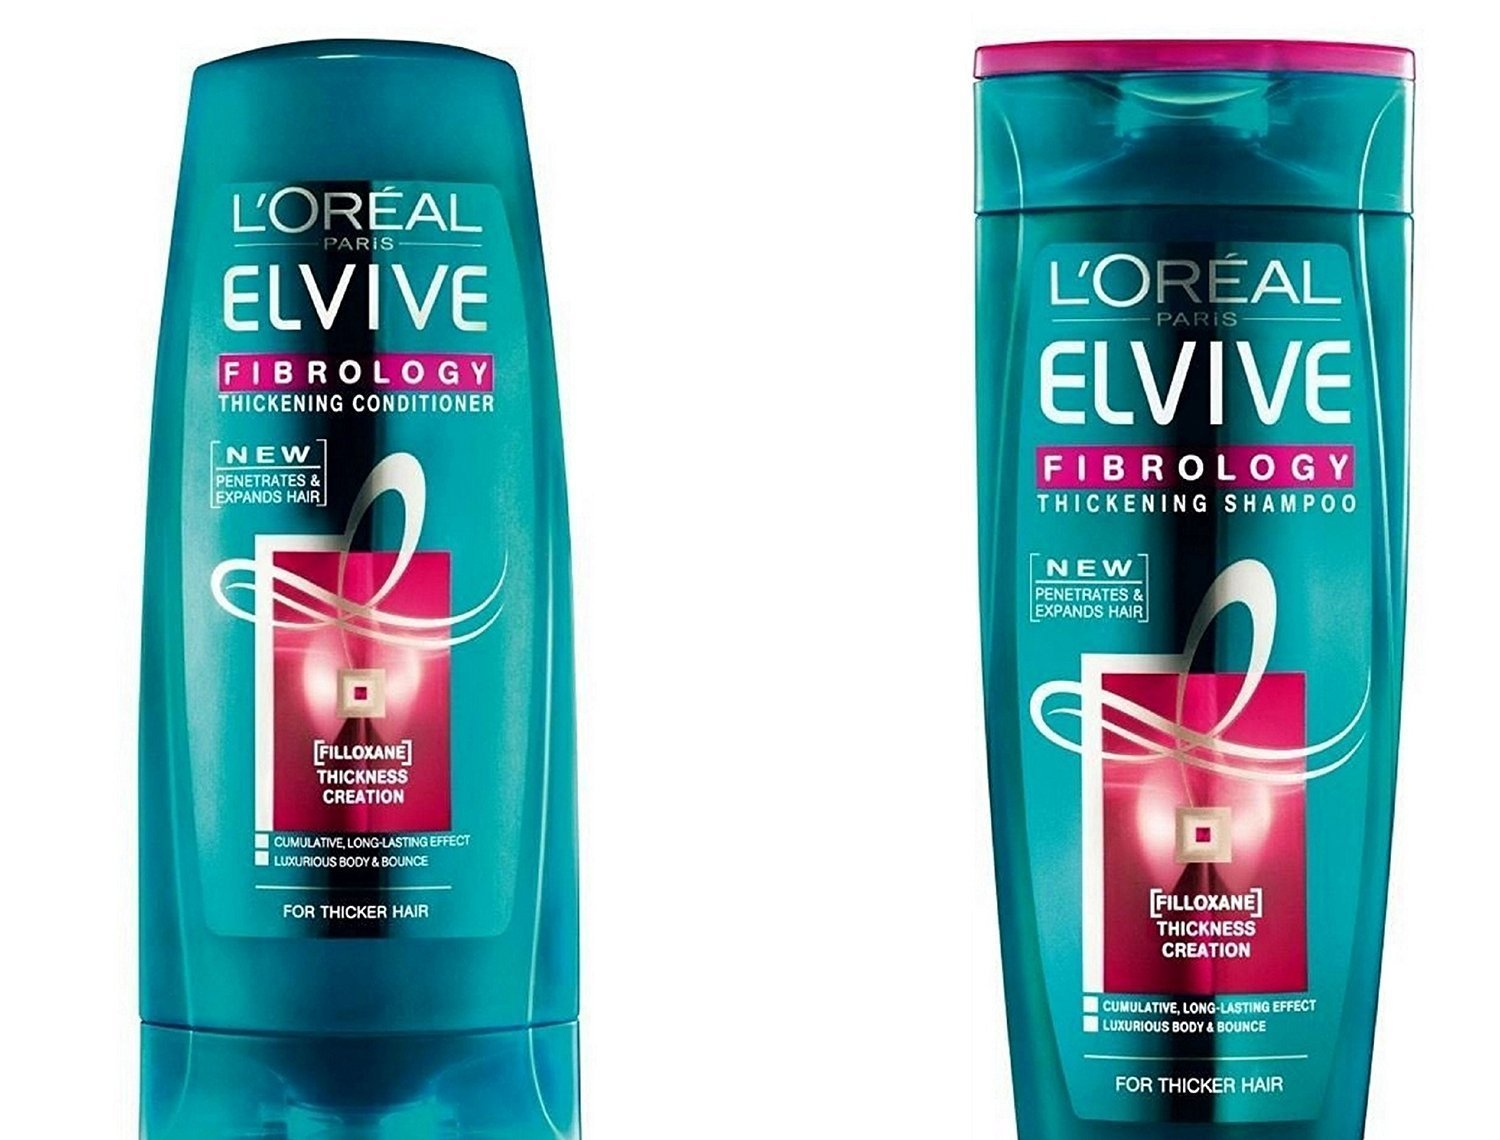 L'Oreal Paris Elvive Fibrology Value Pack 400ml Thickening Shampoo, 400ml Thickening Conditioner Set. Large Bottle Bundle. L' Oreal